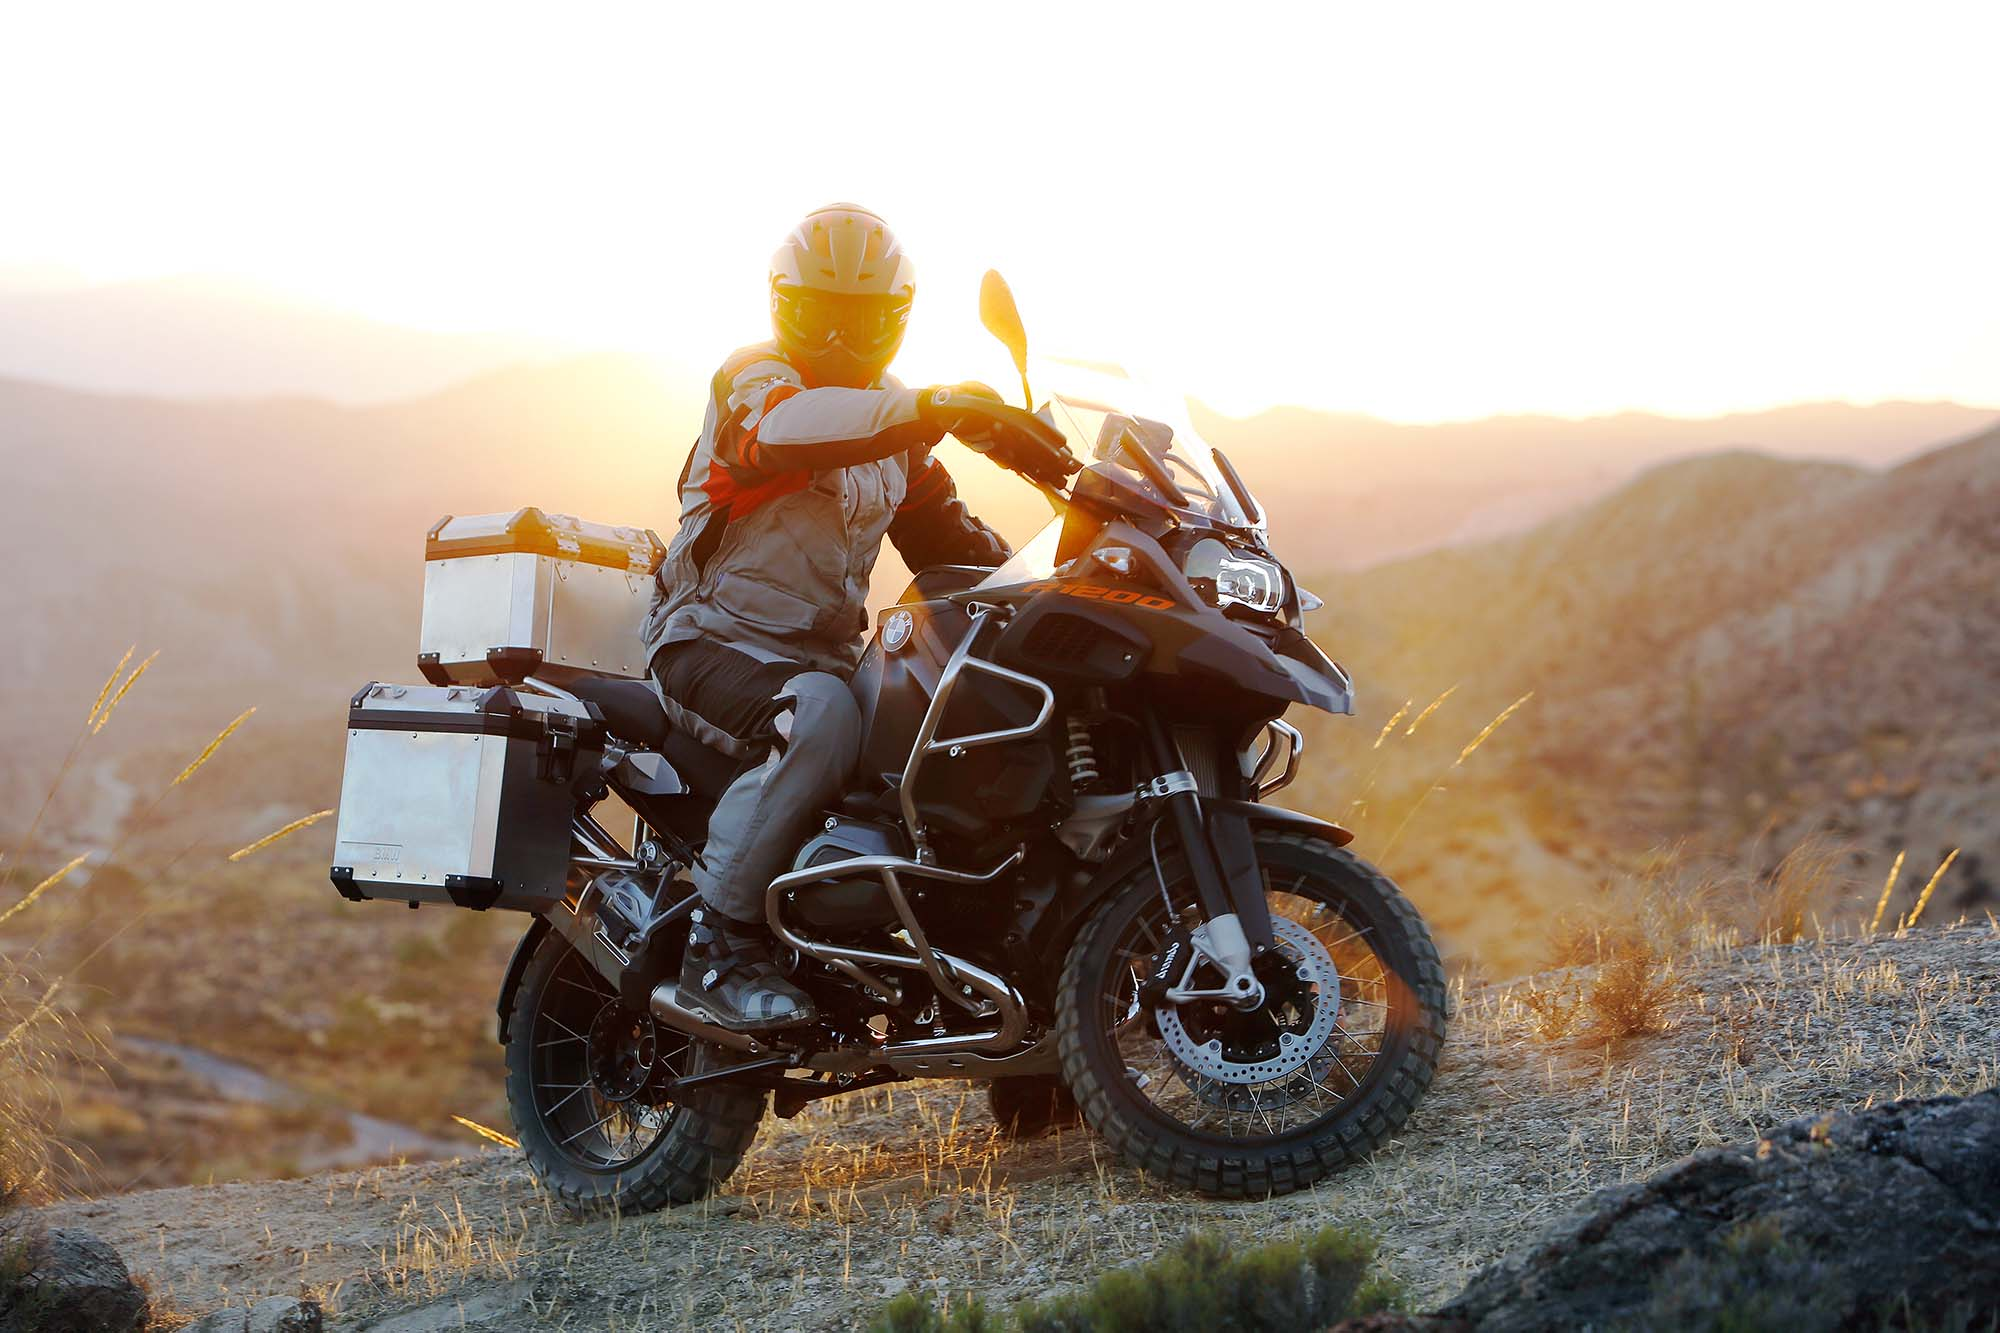 R1200gs Is Still The Bestselling Bmw Motorcycle Autoevolution